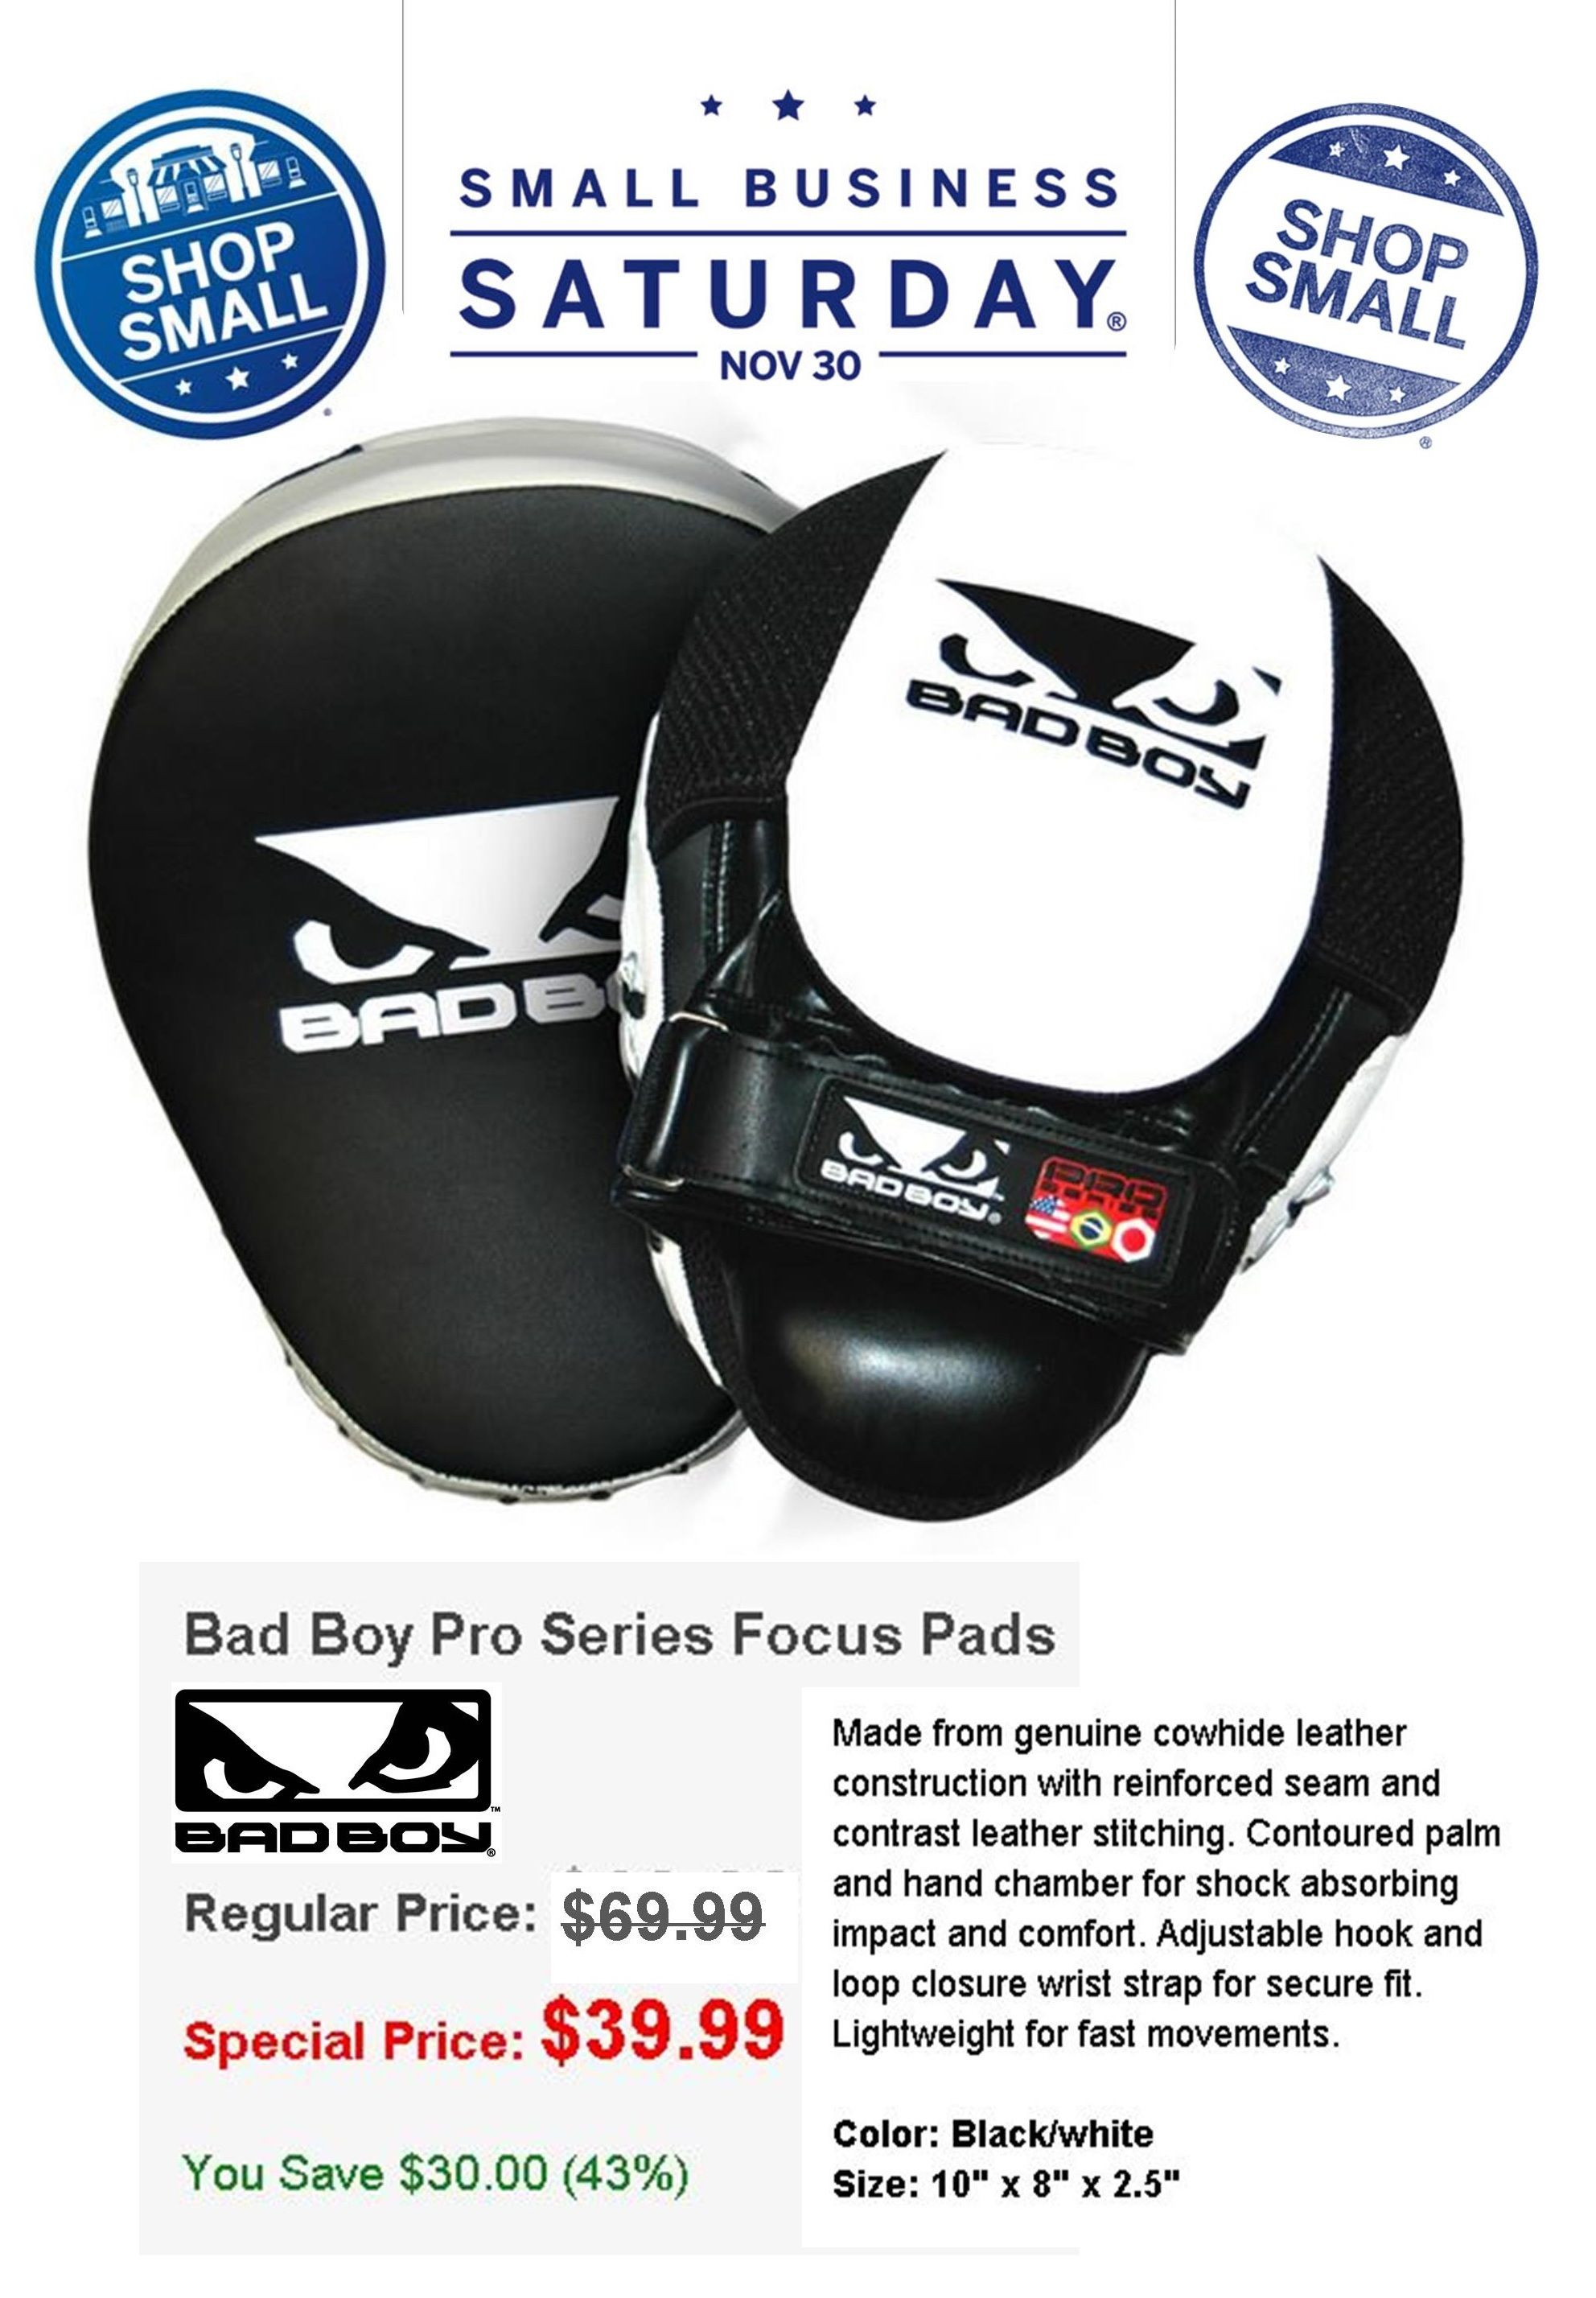 Class One Is Having A Super Sale On Select Mma Muay Thai And Boxing Gear On Small Business Saturday November 30th Cash Sales En Bad Boys Boys Combat Training